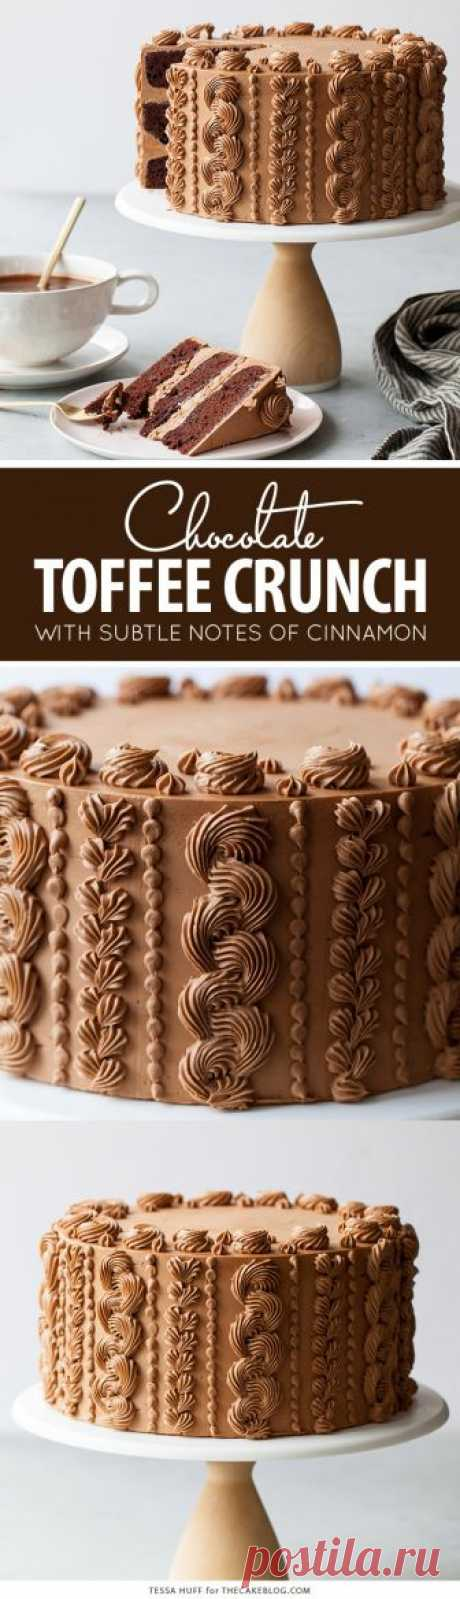 Chocolate Toffee Crunch Cake